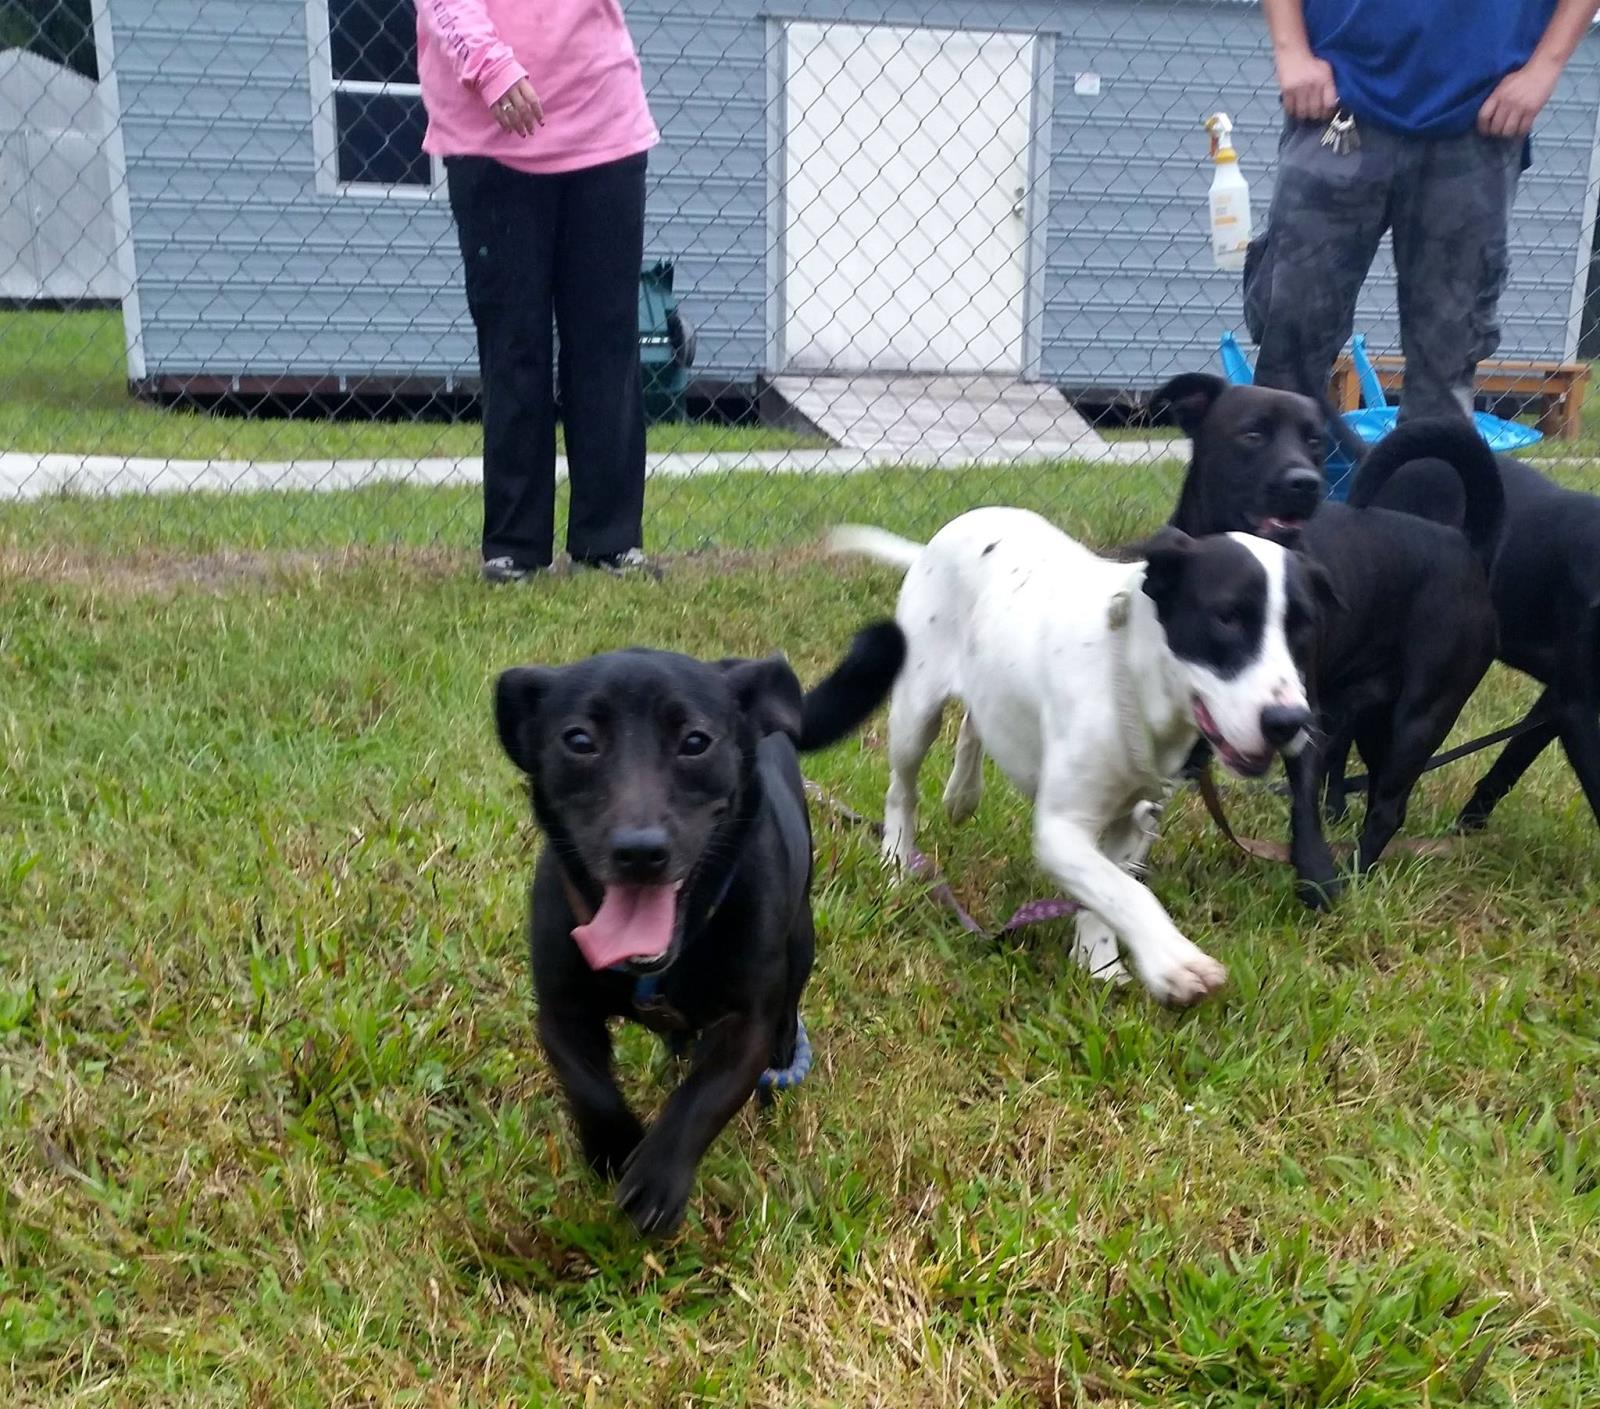 black dog, black and white dog playing in playgroup with human chaperones